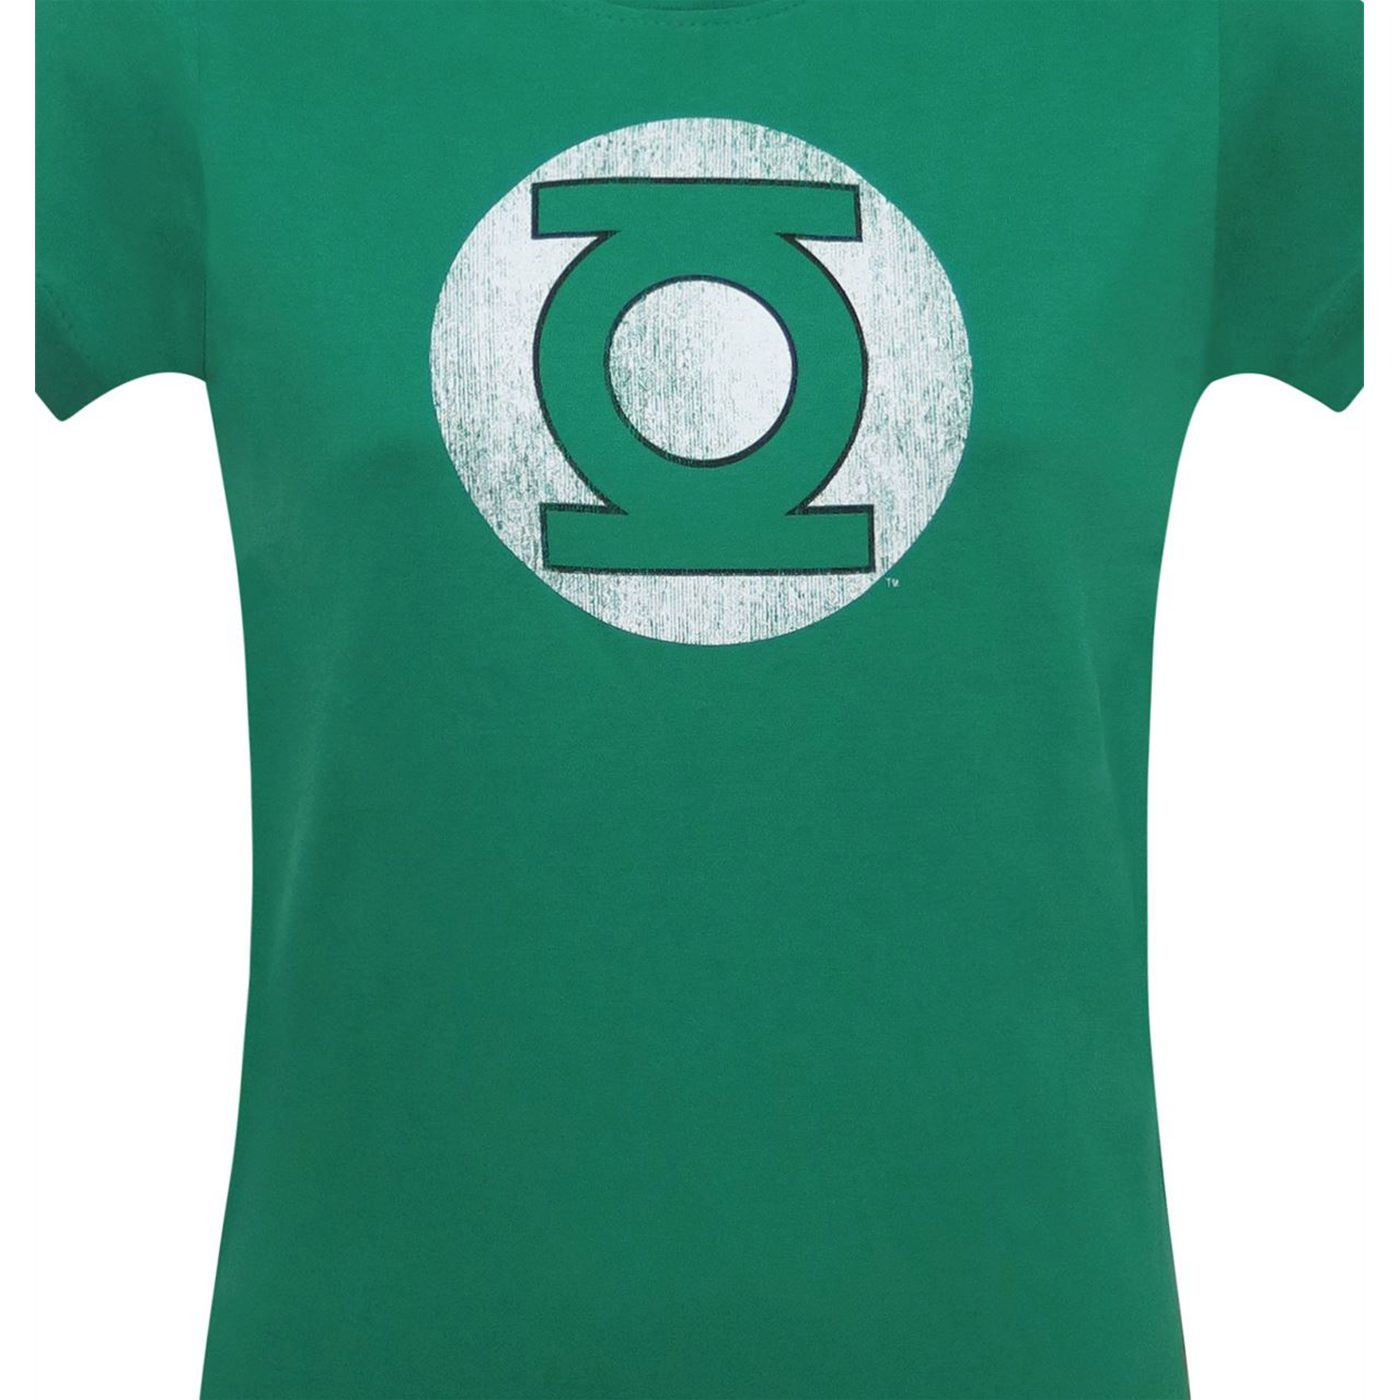 Green Lantern Dark Green Distressed Symbol Women's T-Shirt